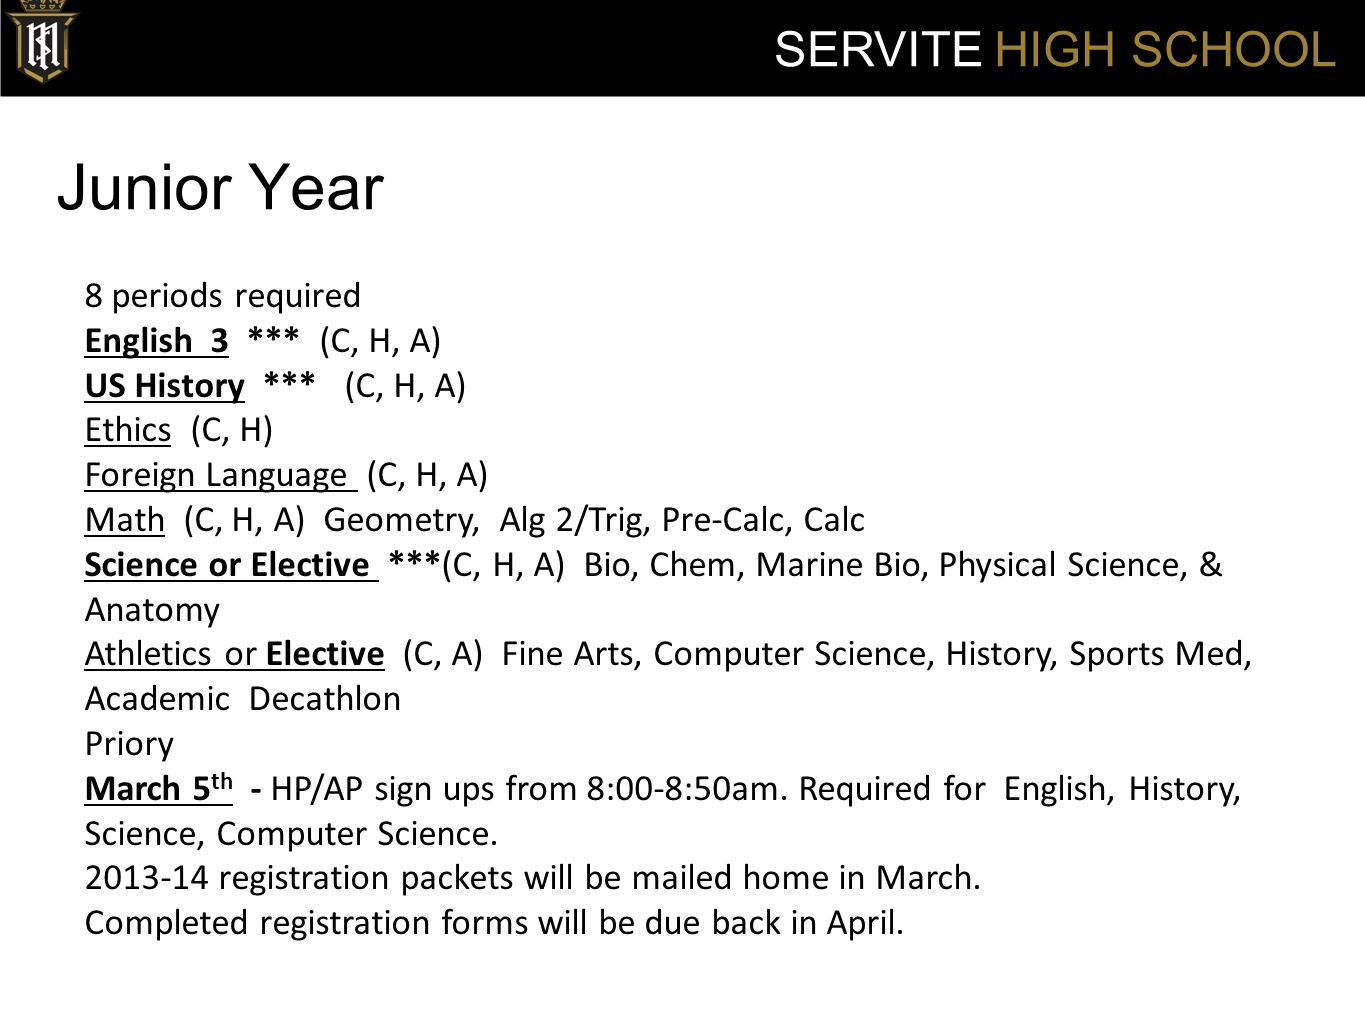 Junior Year SERVITE HIGH SCHOOL 8 periods required English 3 *** (C, H, A) US History *** (C, H, A) Ethics (C, H) Foreign Language (C, H, A) Math (C,